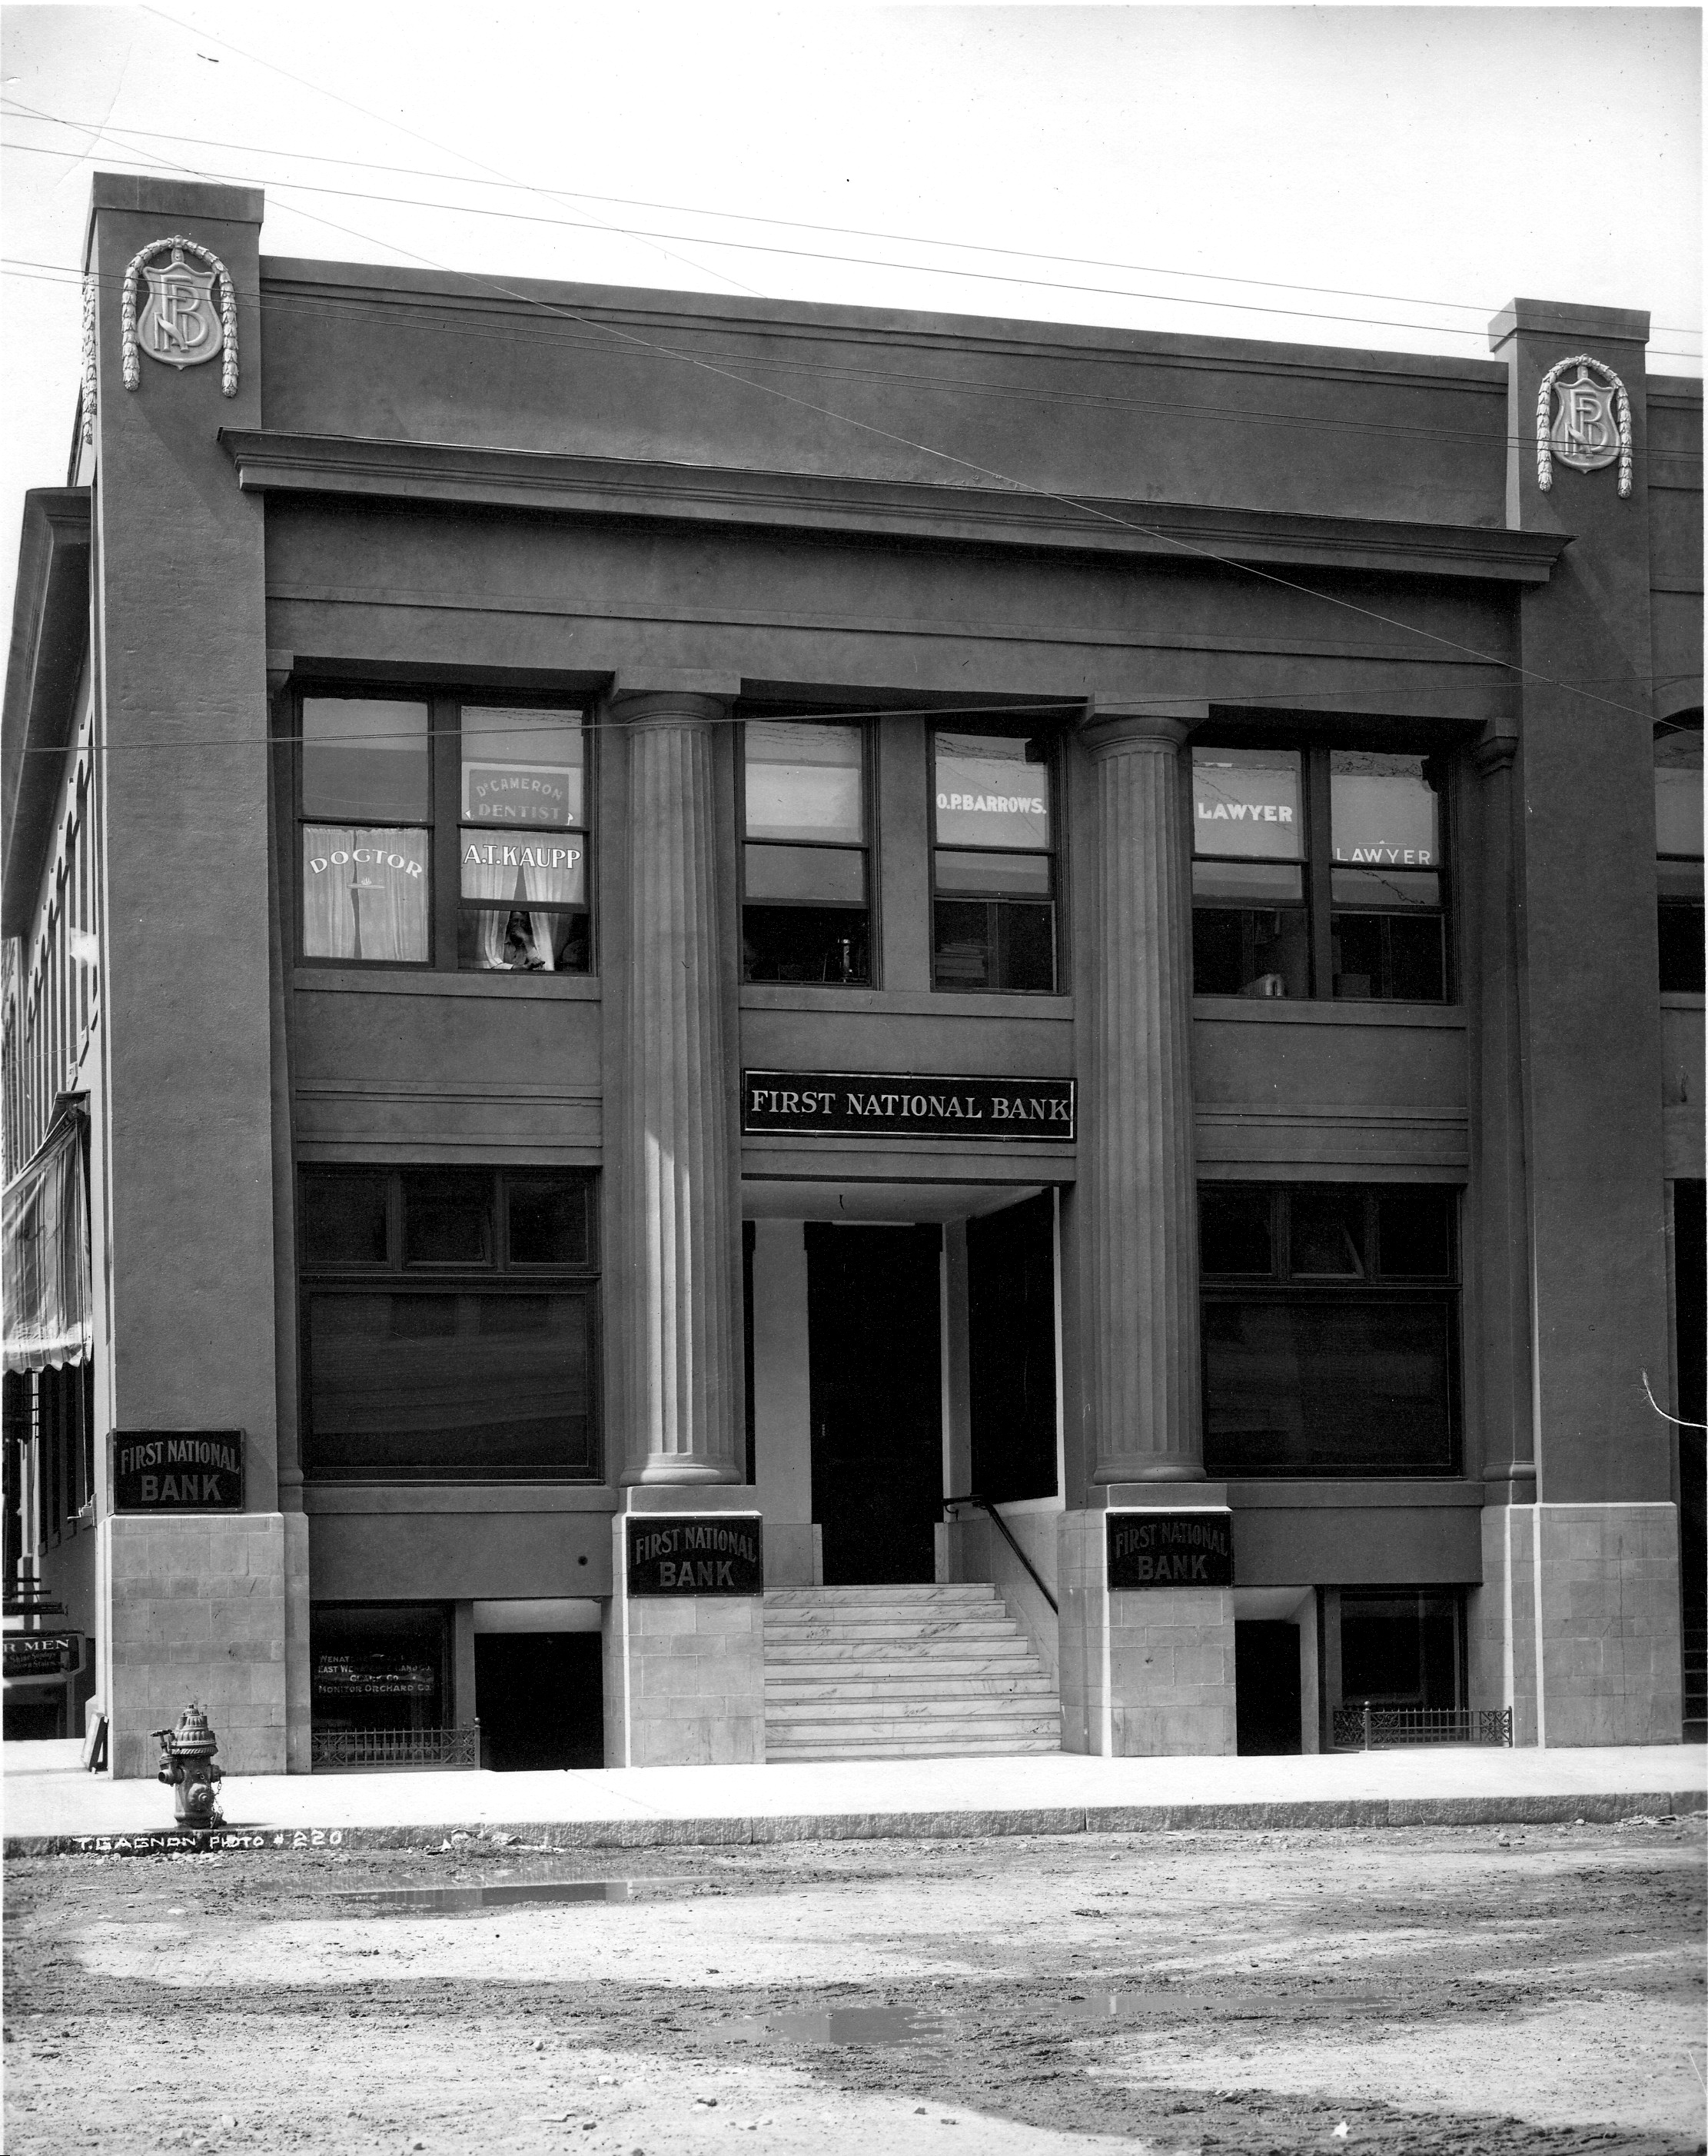 The stately facade of First National Bank as it appeared in 1910.